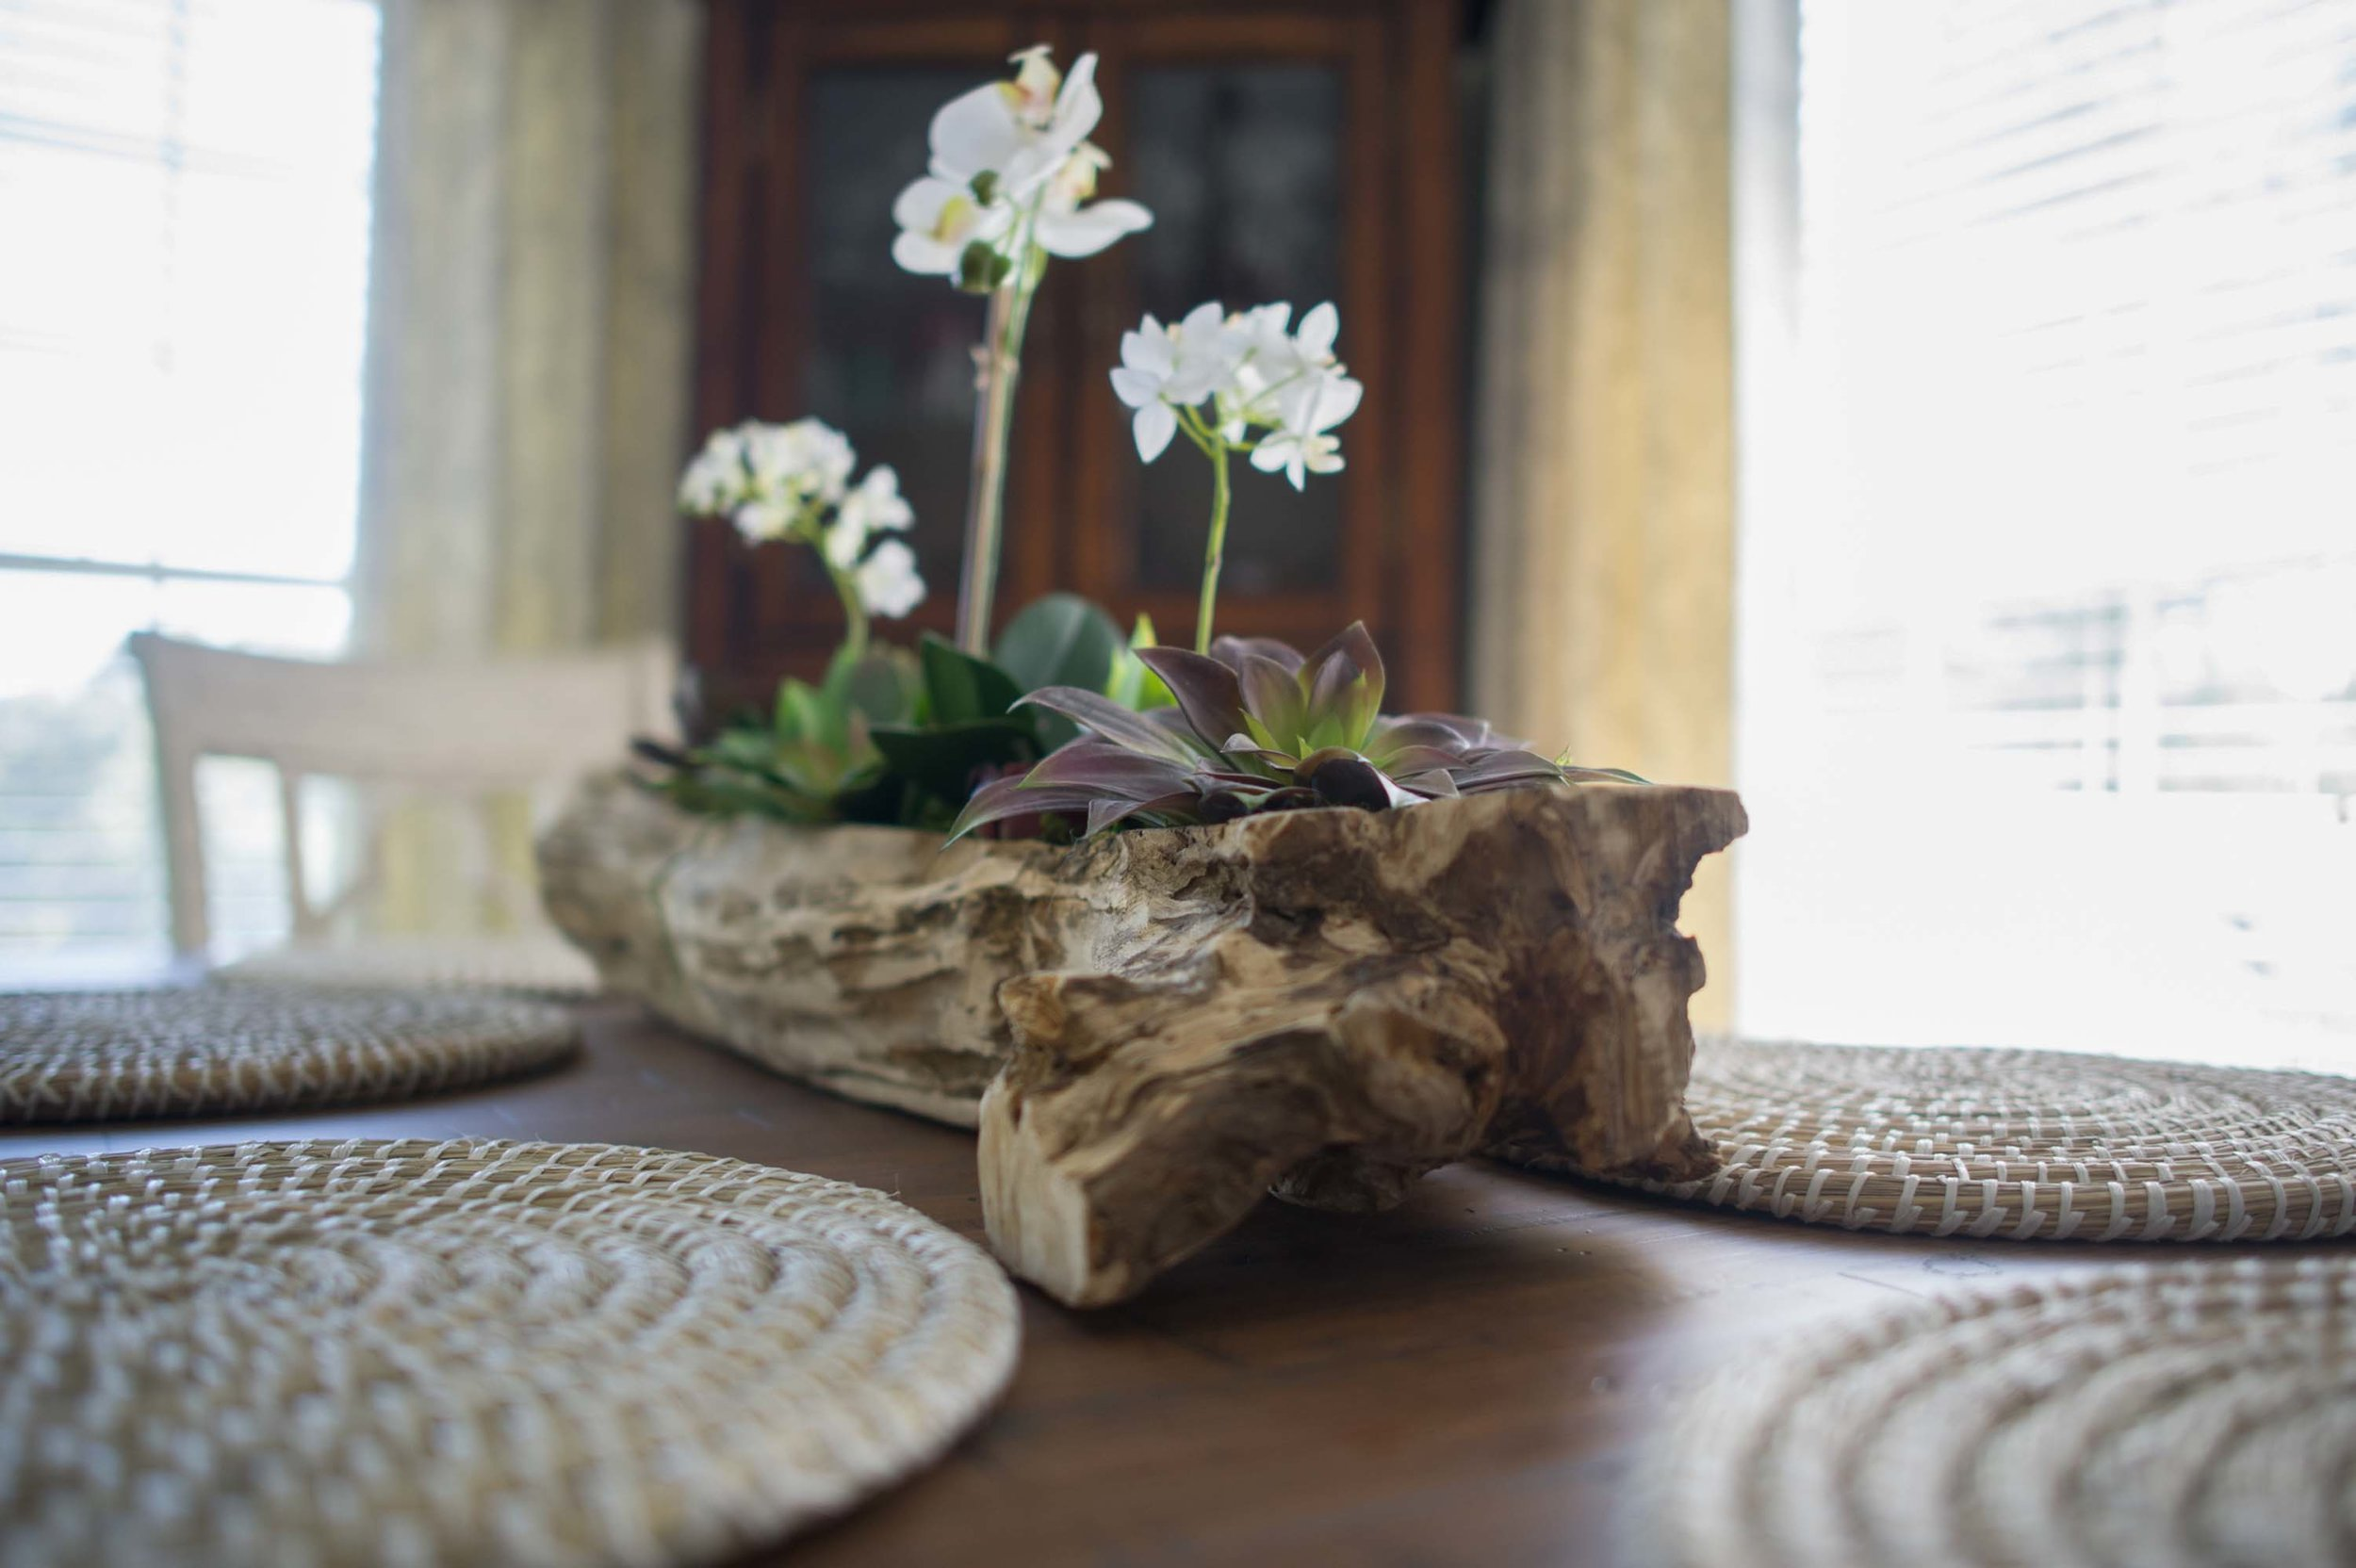 Dining room with plants on pot made of log